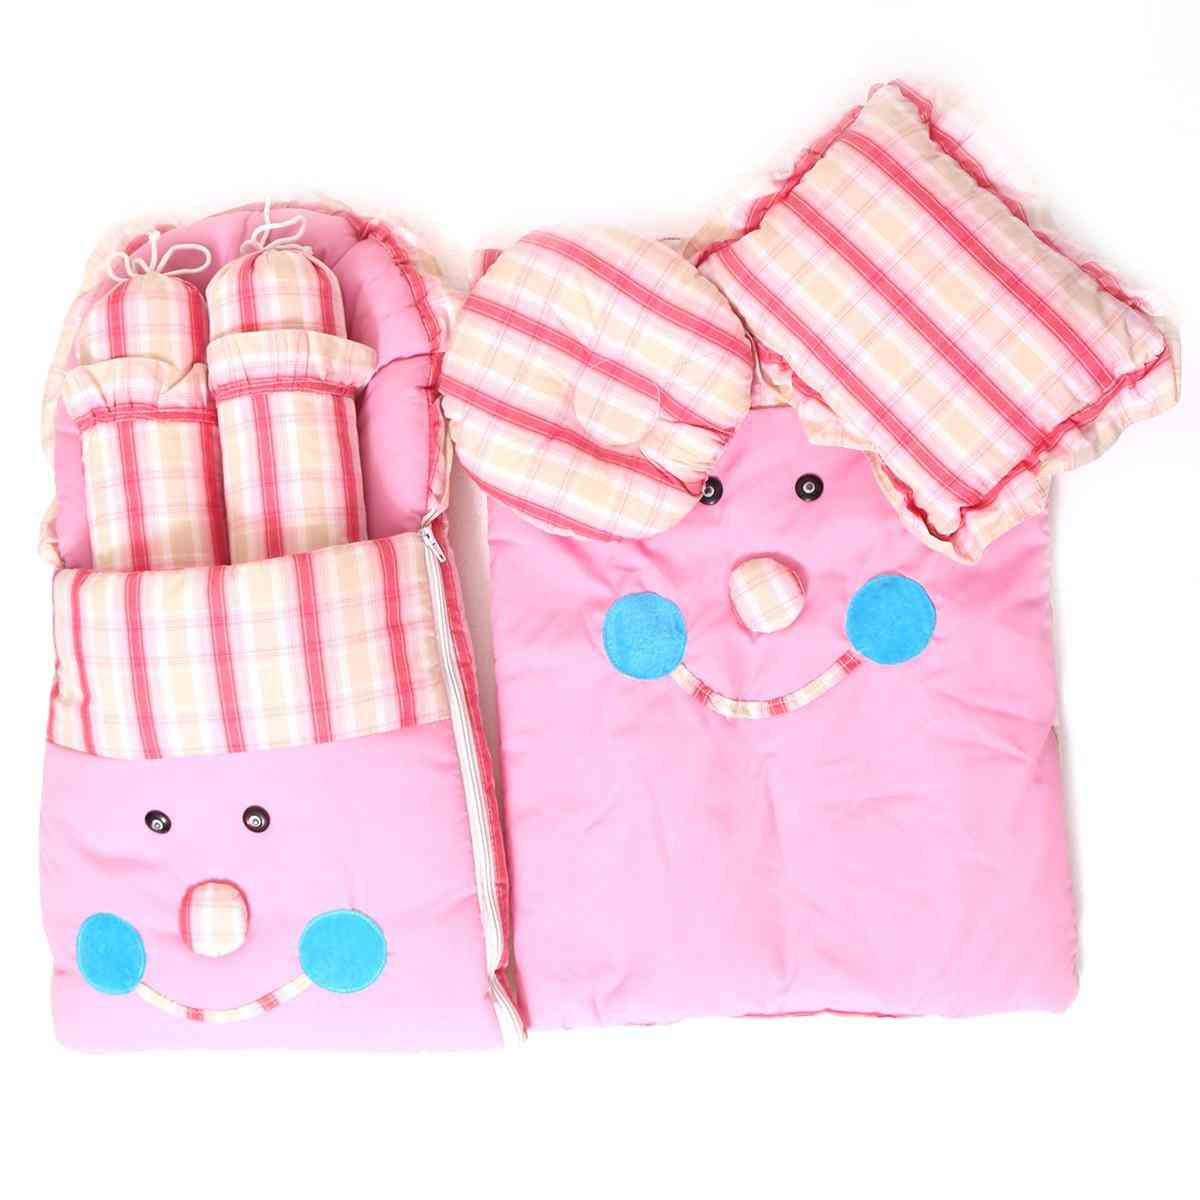 Pack of 7  Full Size Portable Bed Set for Babies with 4 Pillows , Resting Sheet and Baby Carrying Bag (44x38 Inches)  Pink